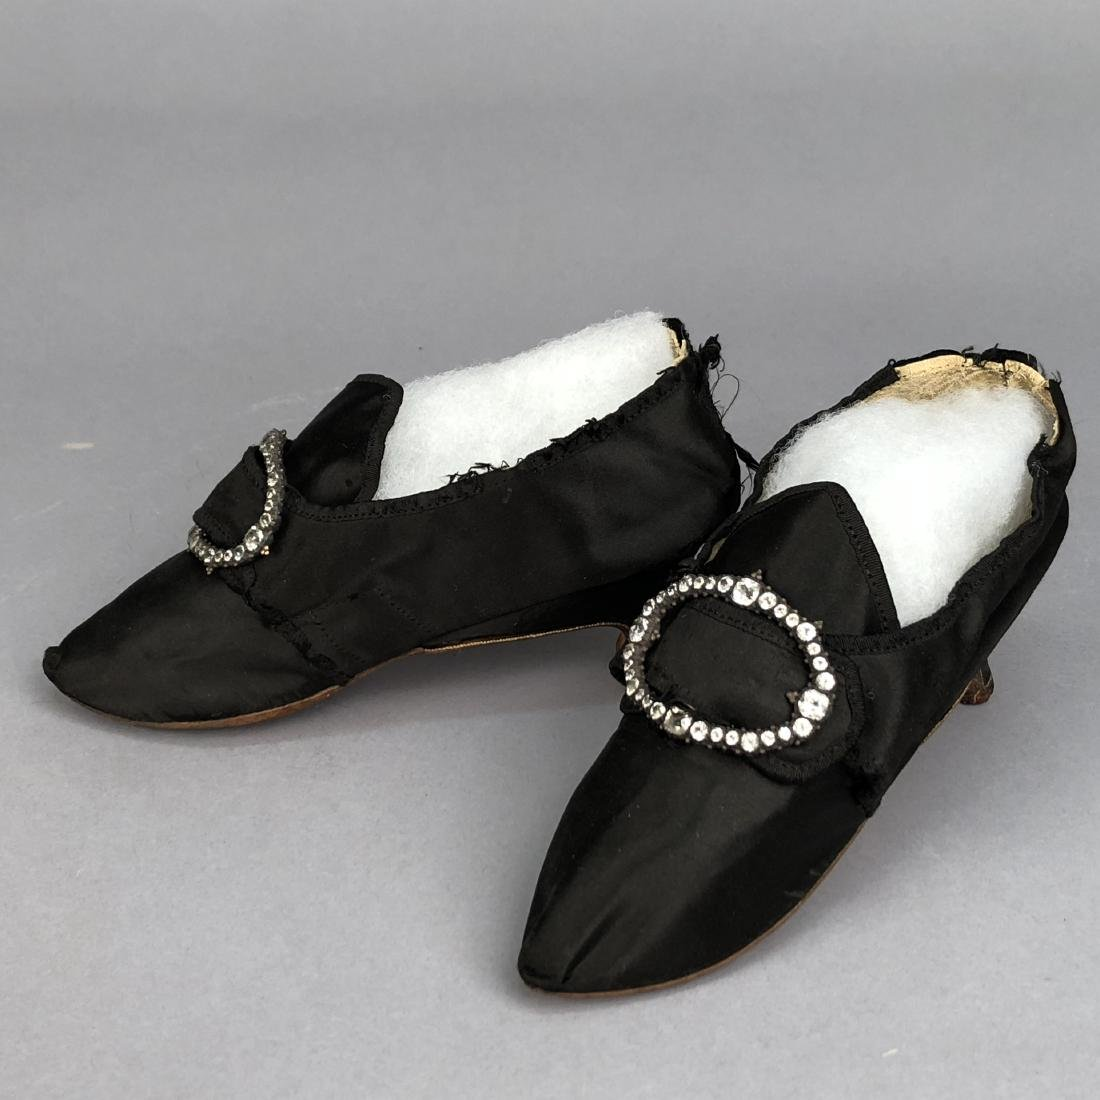 SATIN SHOES with DIAMANTE BUCKLES, 1770s - 2